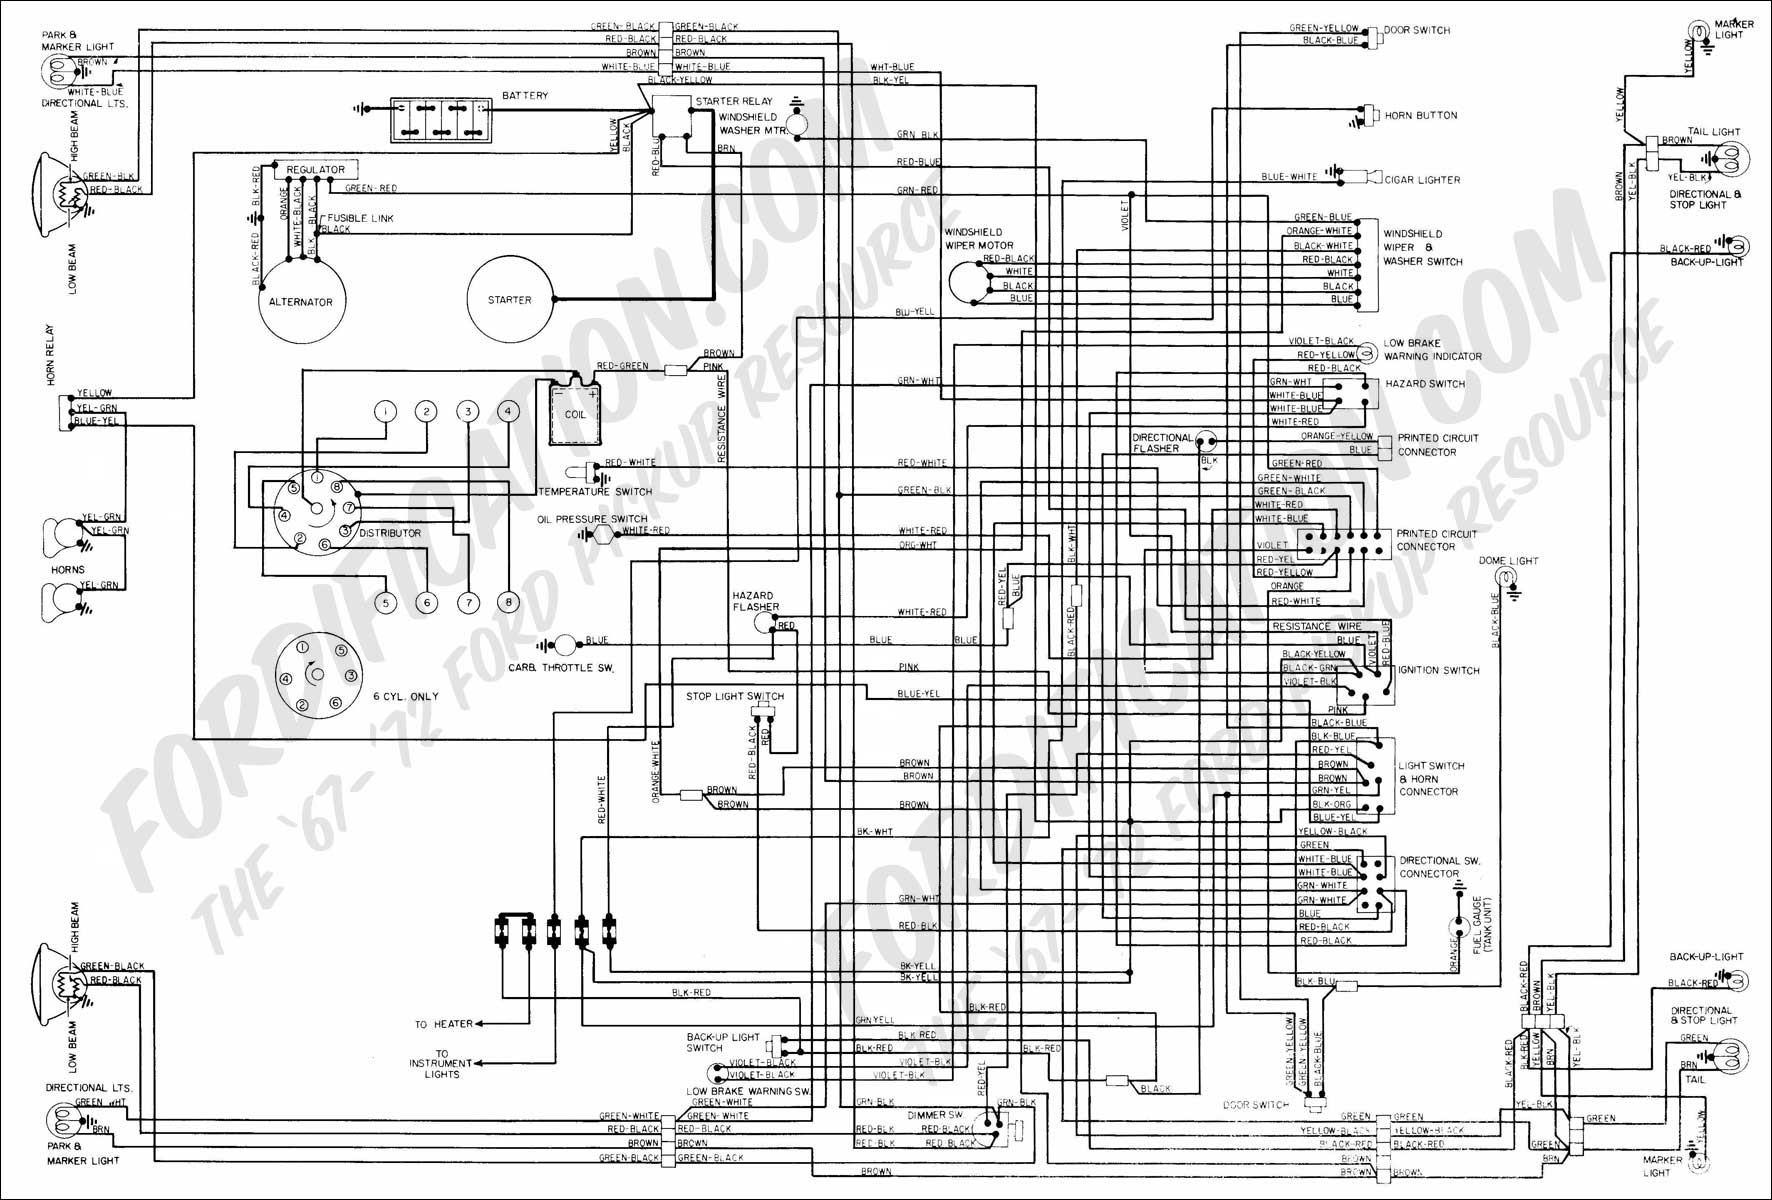 wiring diagram 72_quick 2002 ford f250 wiring diagram efcaviation com wiring diagram for a 2002 ford ranger at mifinder.co